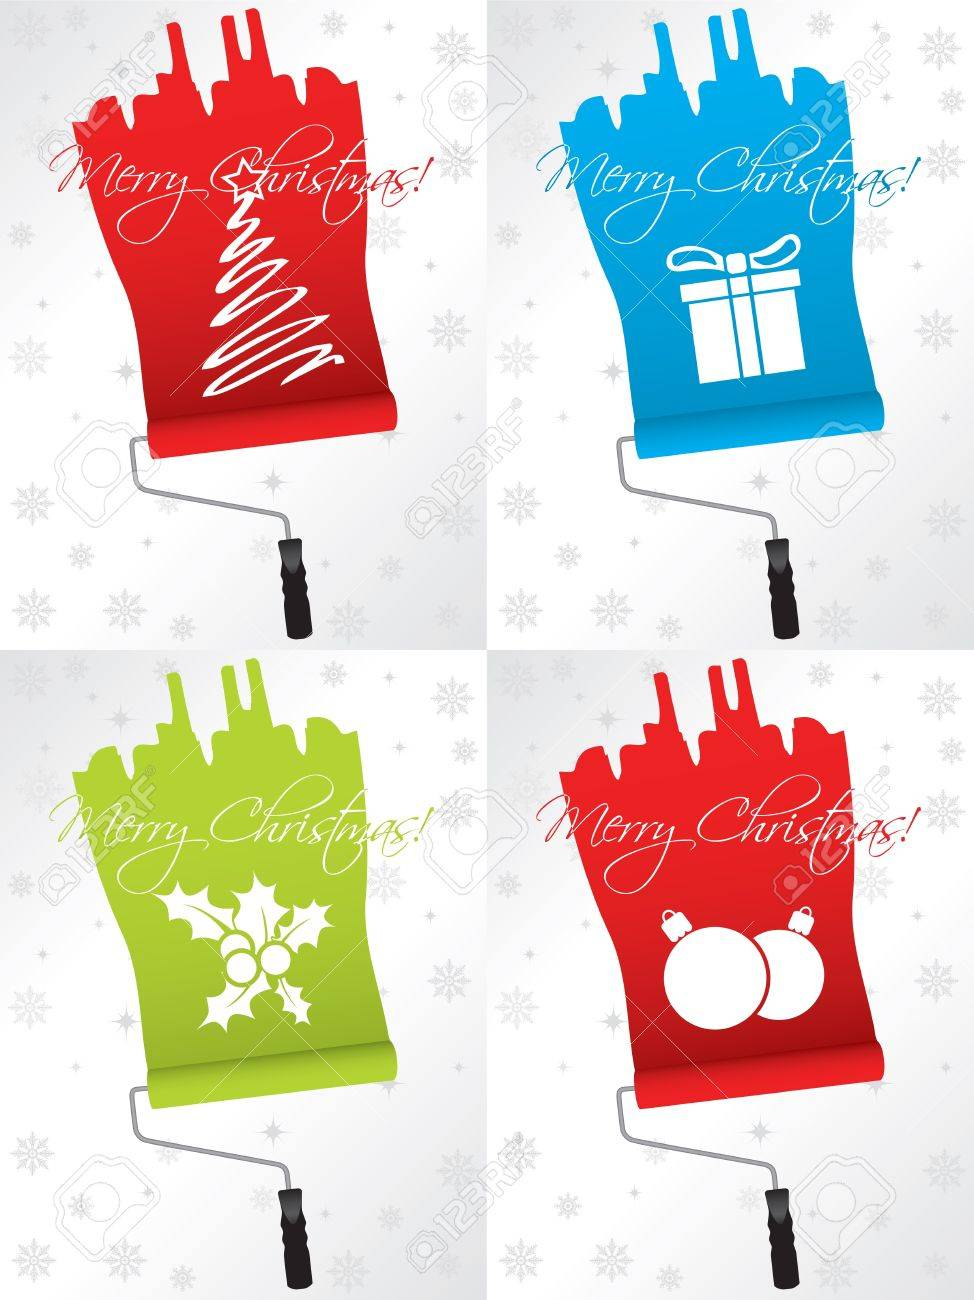 Shifty Christmas Greeting Card Designs With Paint Rollers Royalty